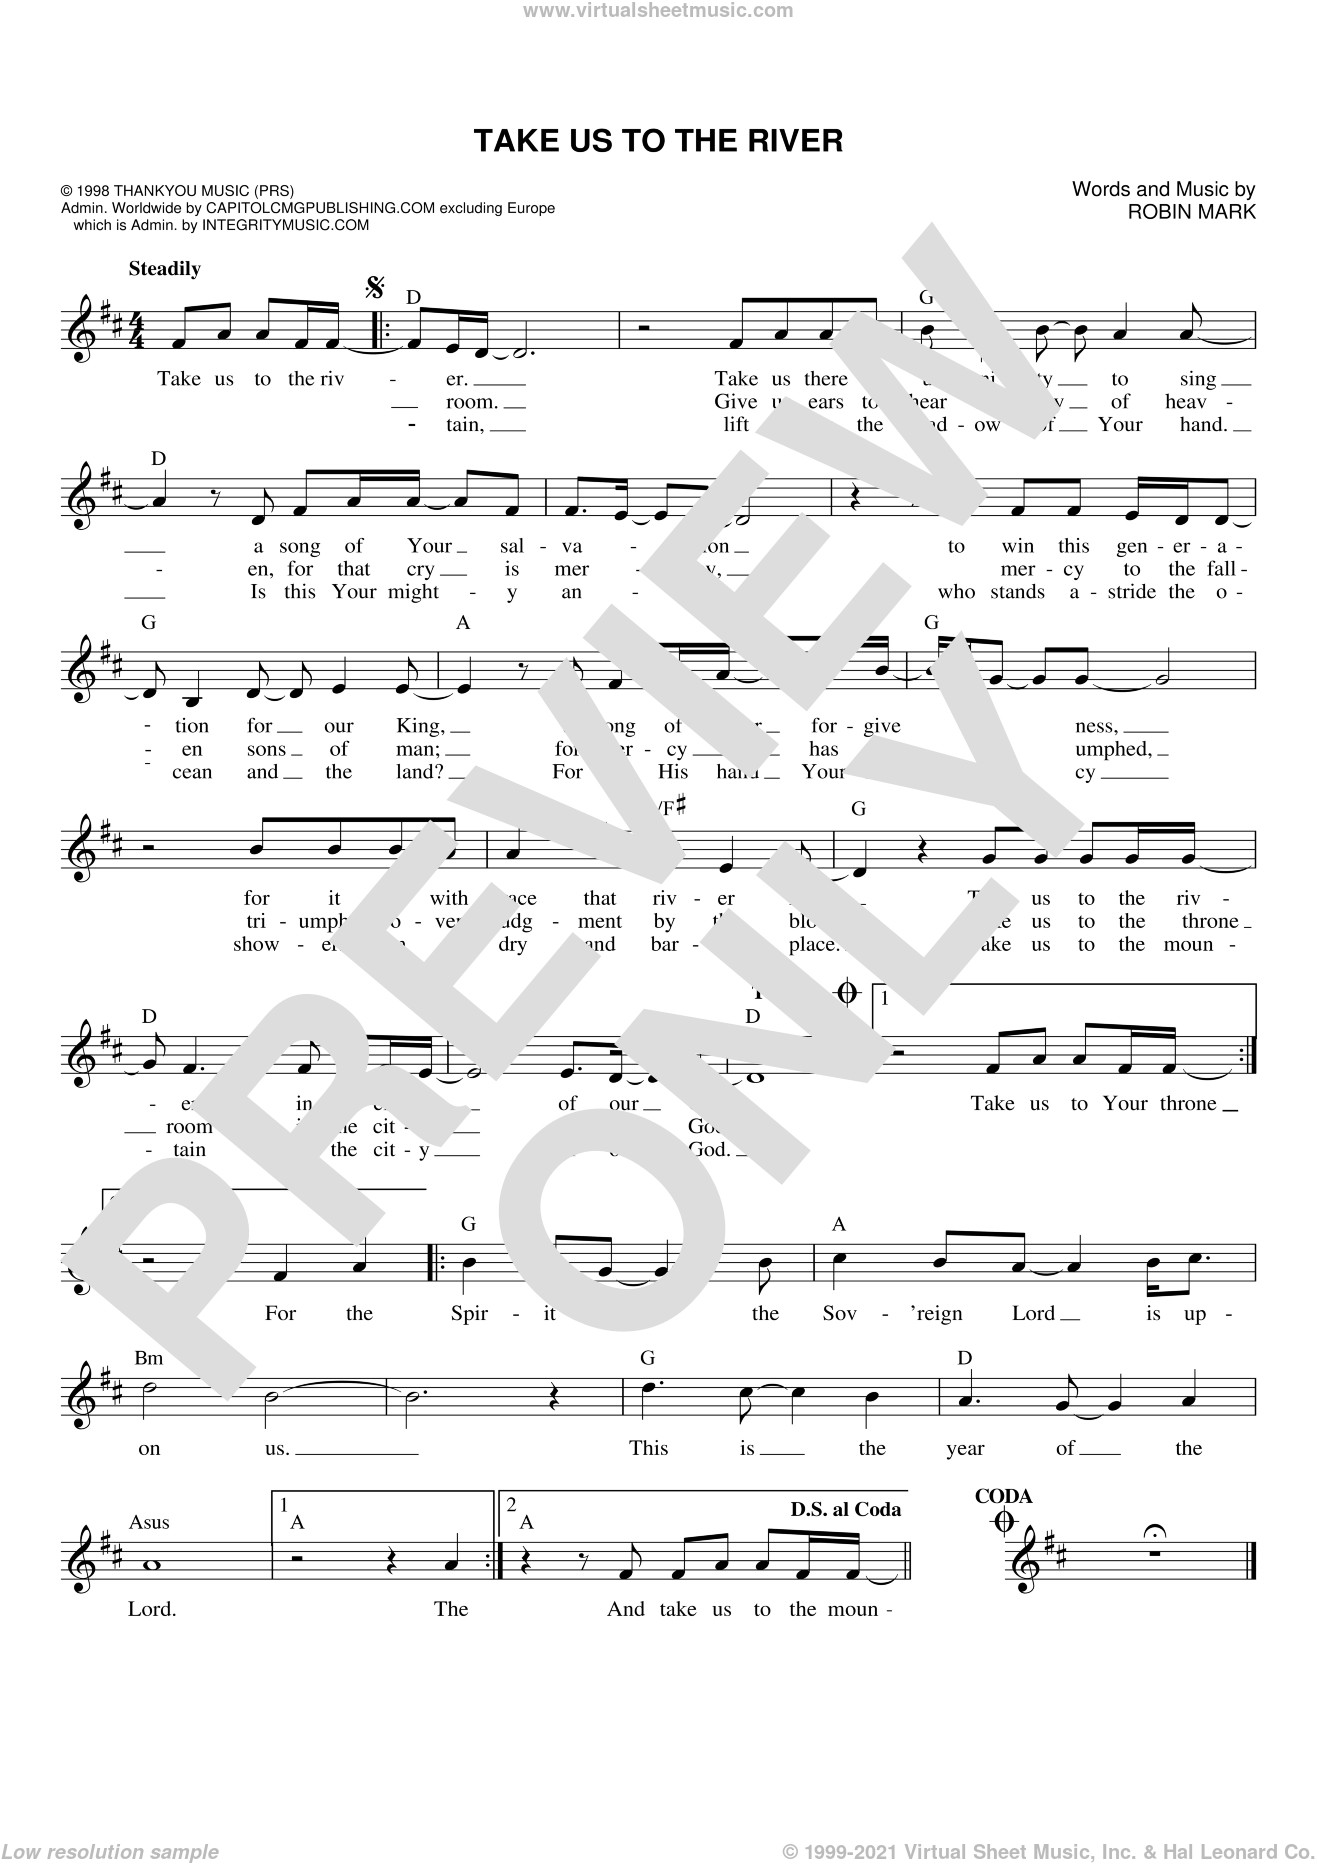 Take Us To The River sheet music for voice and other instruments (fake book) by Robin Mark, intermediate skill level